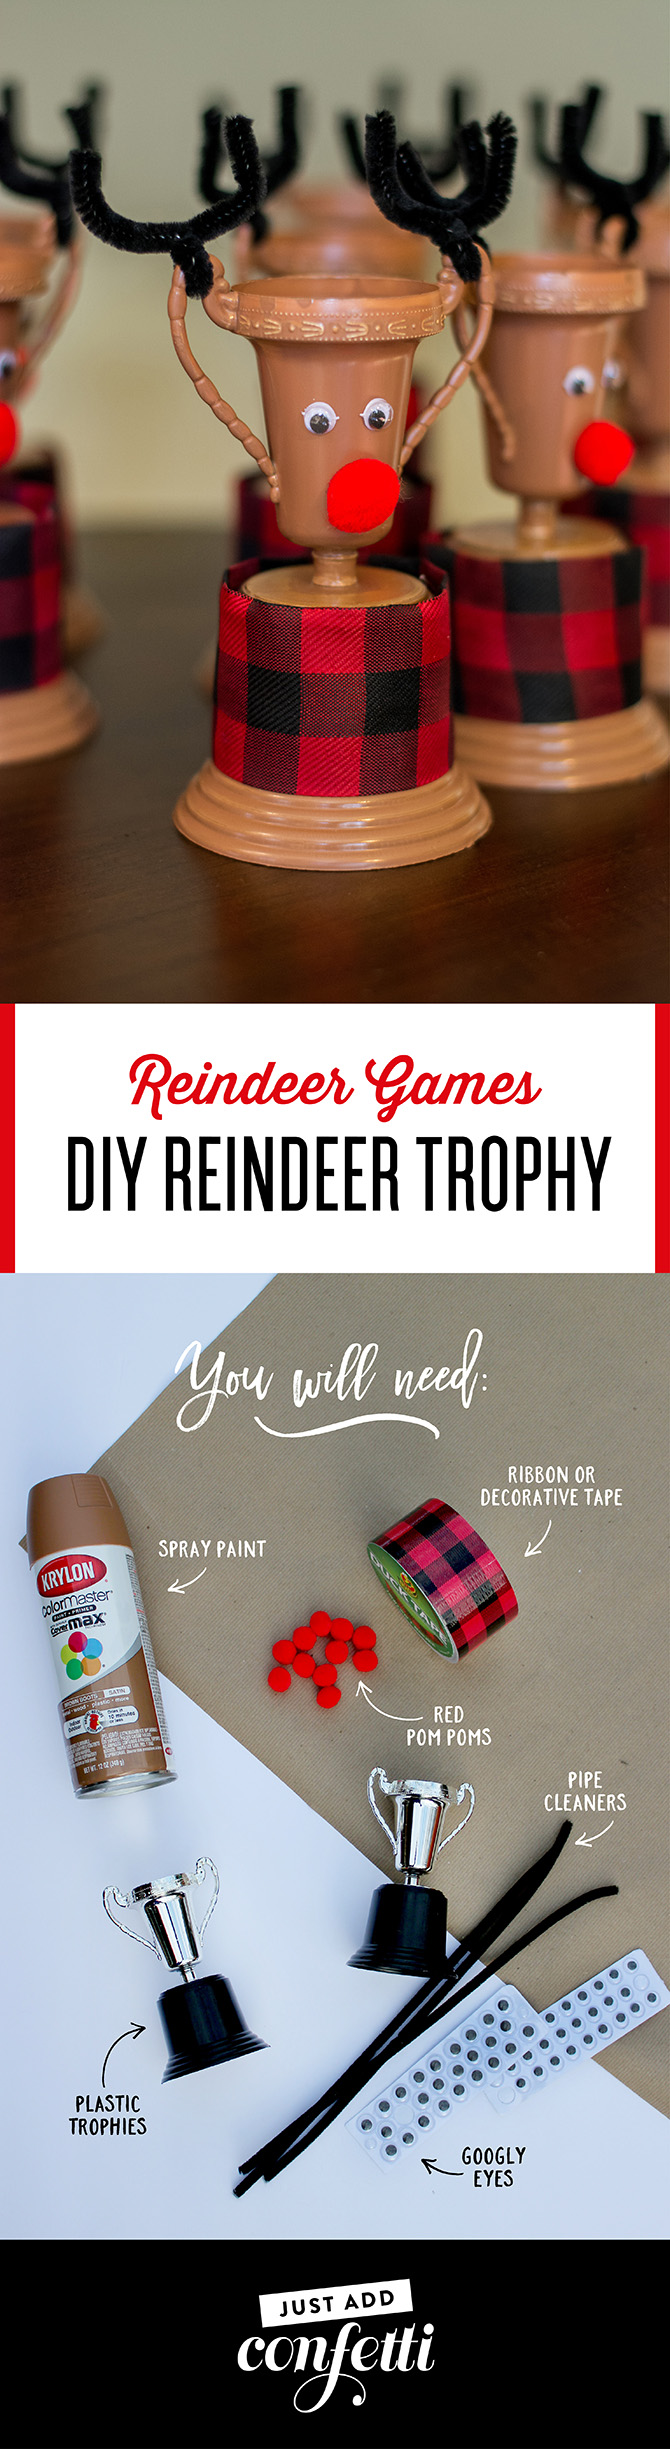 reindeer games, reindeer trophy, diy reindeer trophy, diy reindeer trophy craft, just add confetti, kids christmas party, christmas party, reindeer trophy craft, pittsburgh blogger, party blogger, unique favor, reindeer games trophies, oriental trading, brand partnership